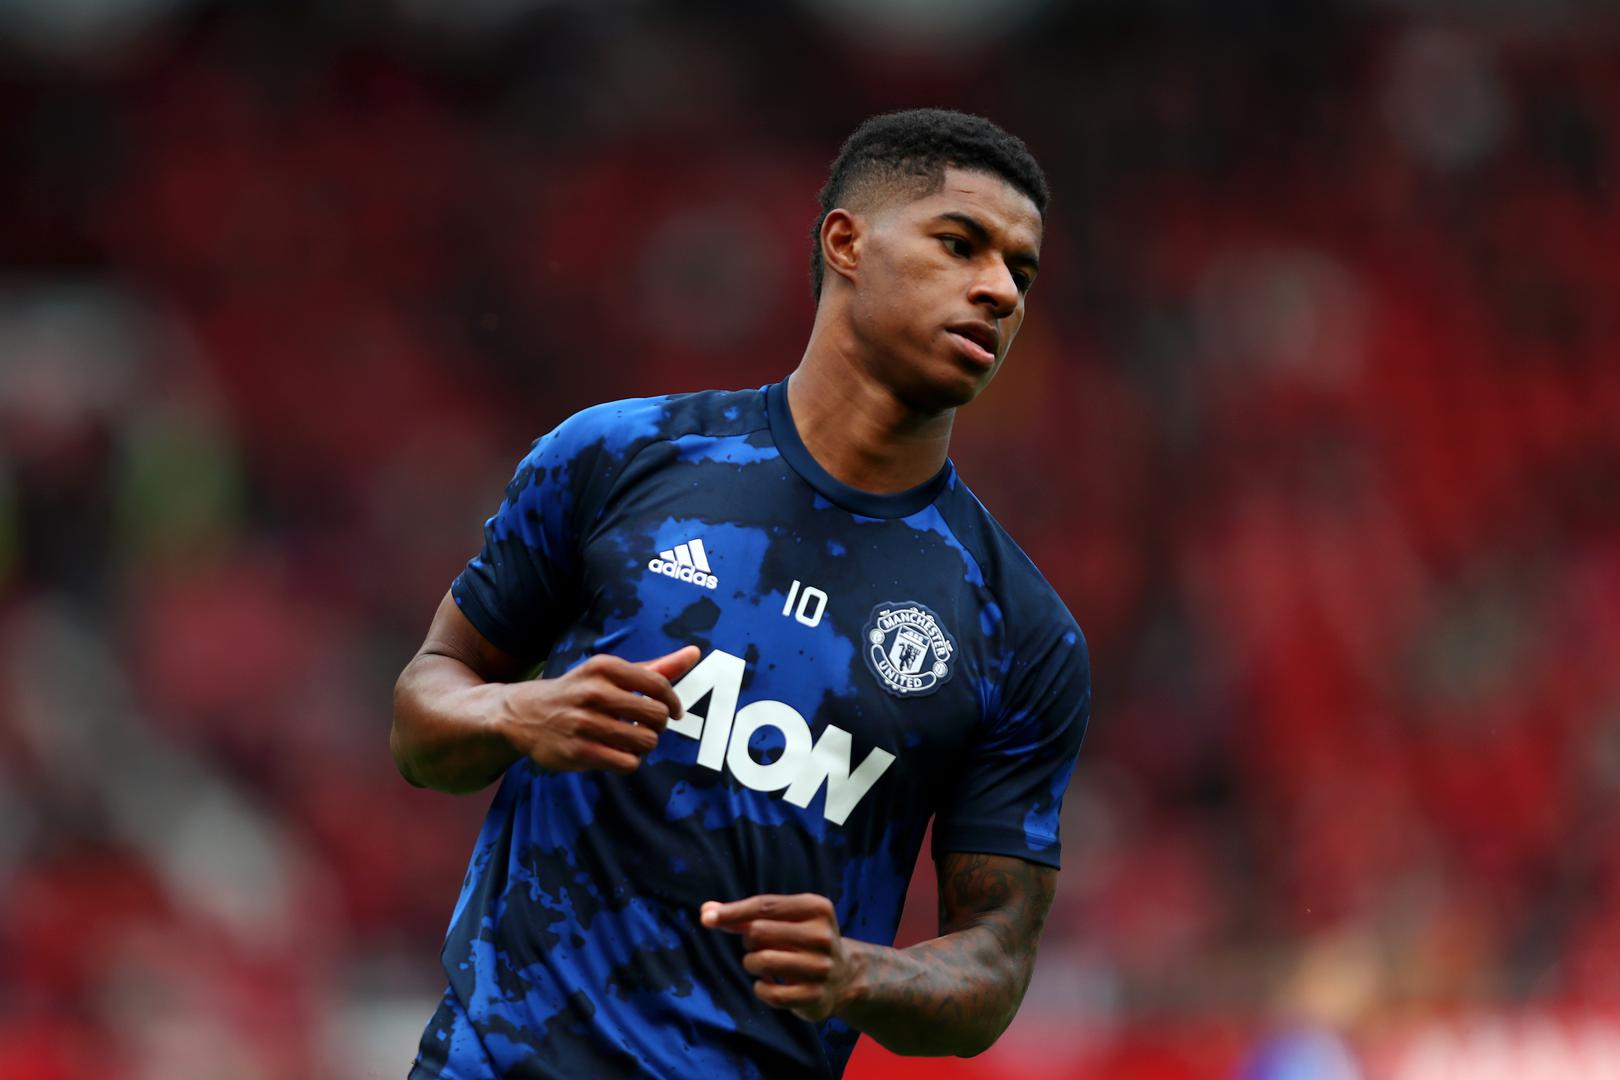 Marcus Rashford warmin@g up before a Premier League game